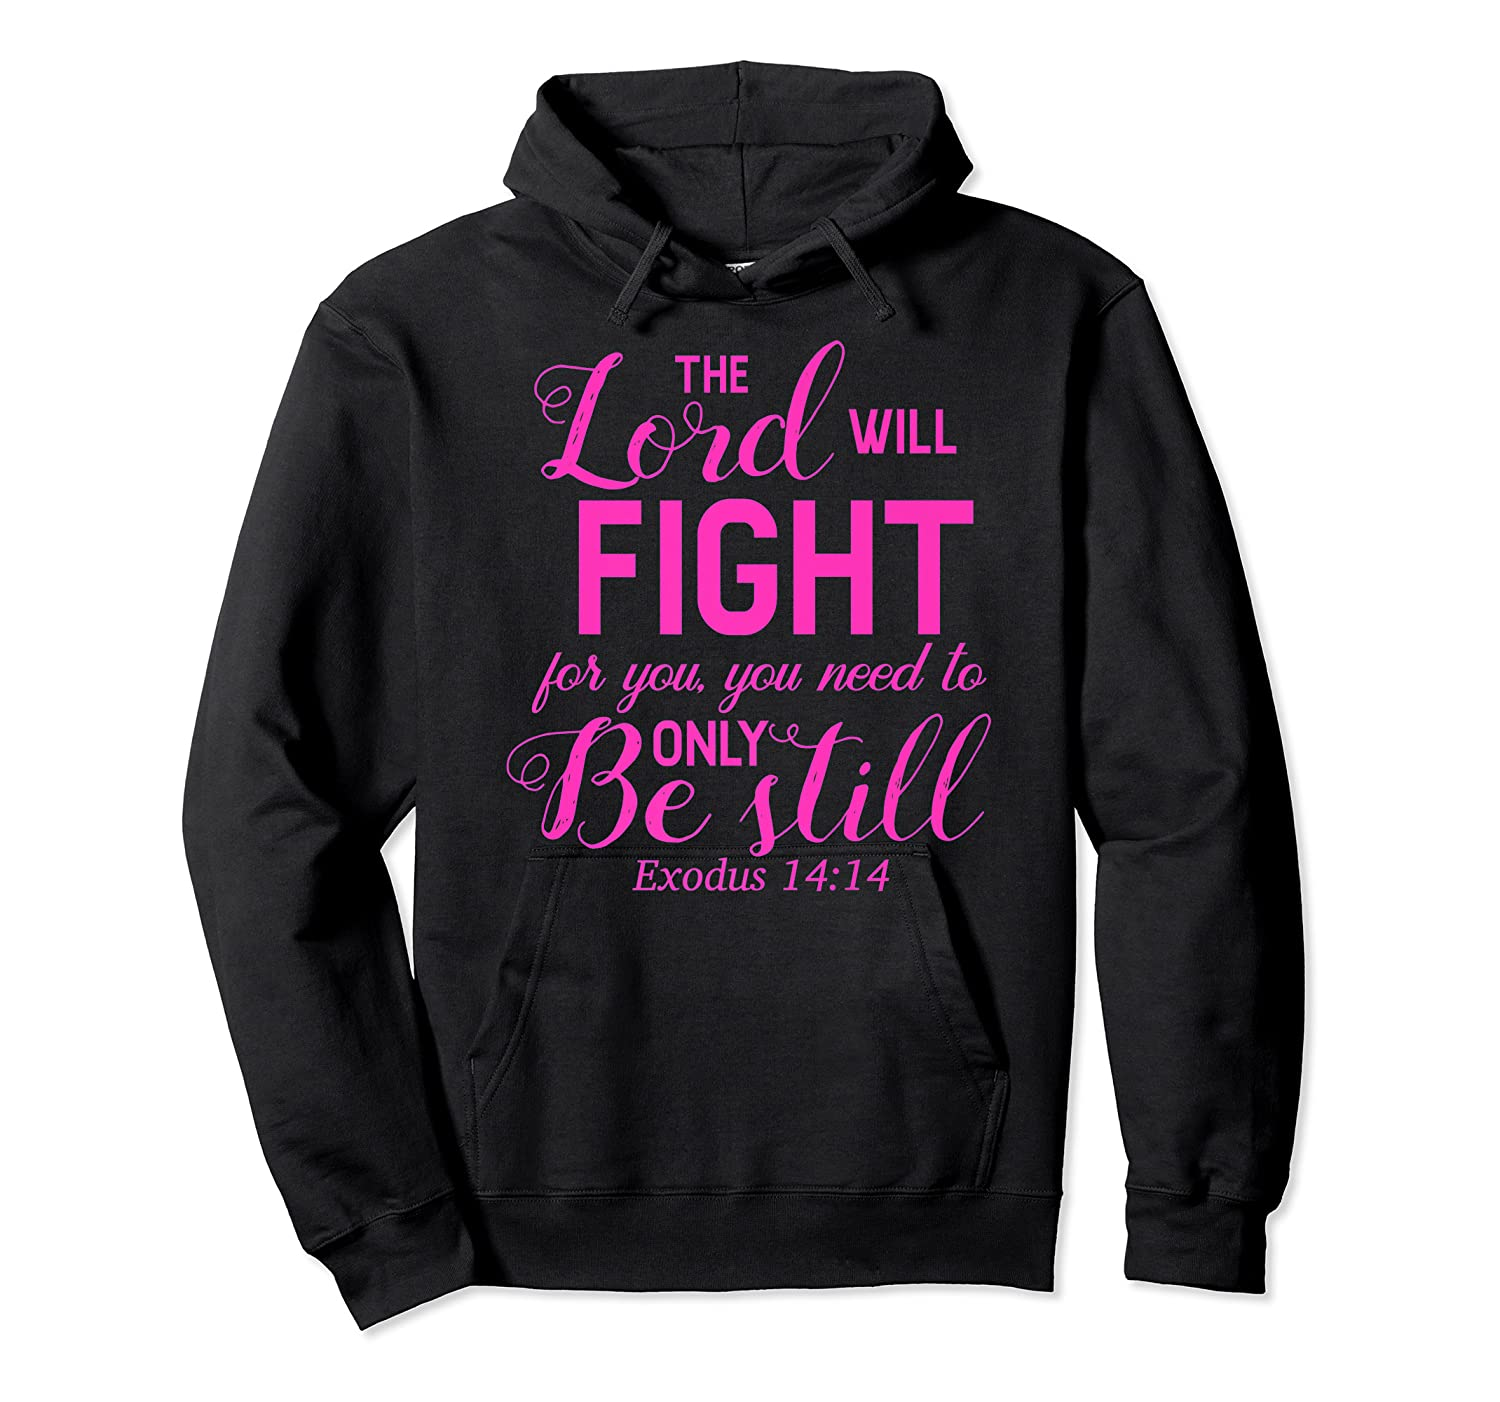 The Lord Will Fight For You, You Need Only To Be Still Verse Shirts Unisex Pullover Hoodie